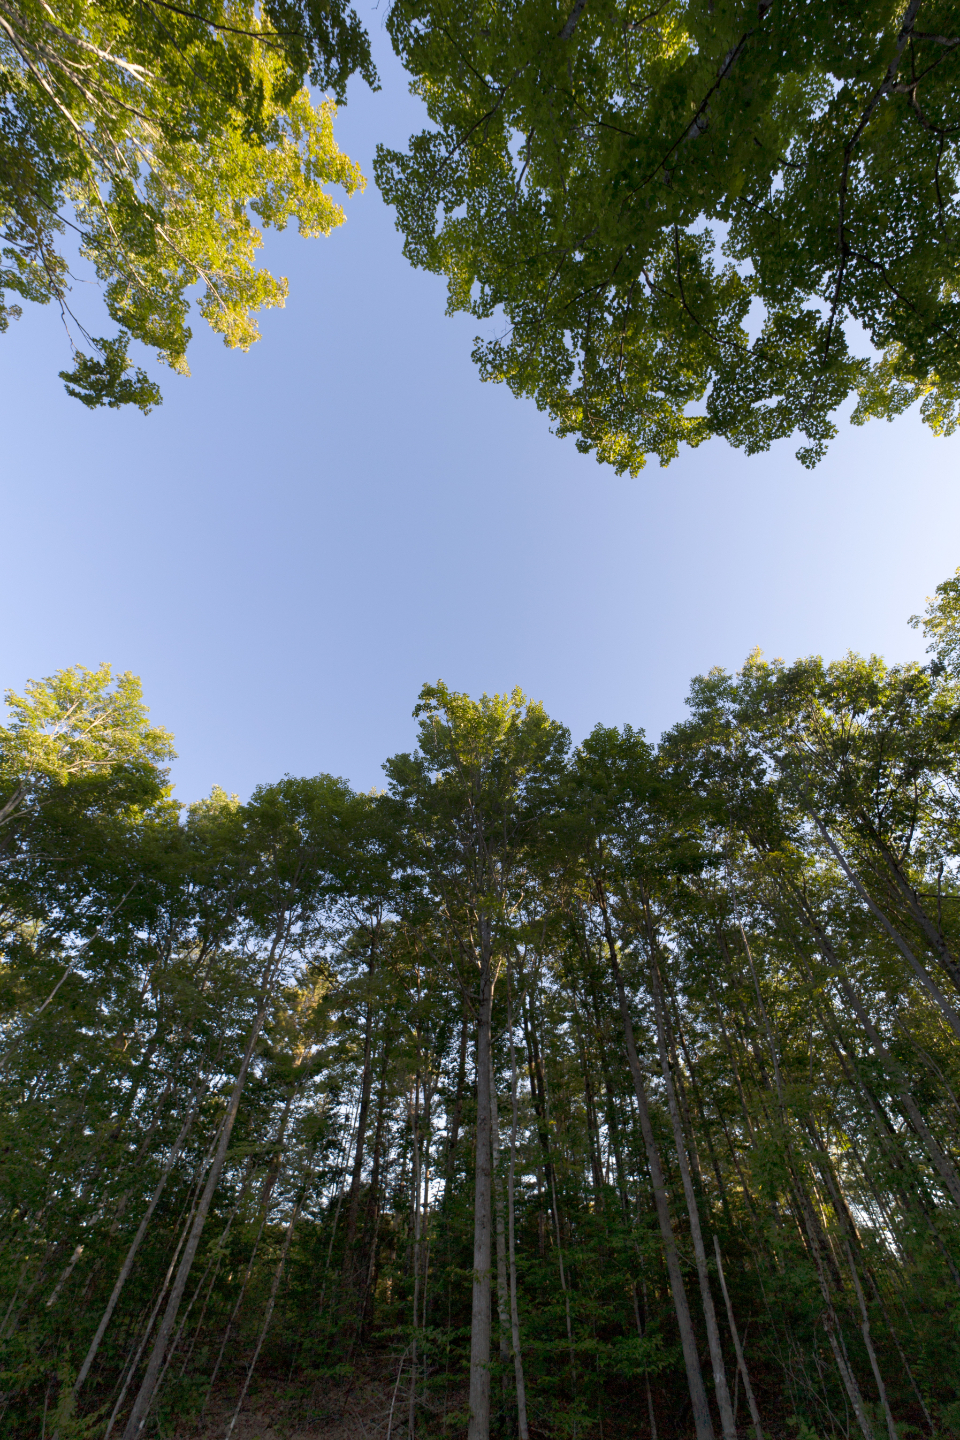 forest sky view tall trees nature growth green outdoors landscape wood environment